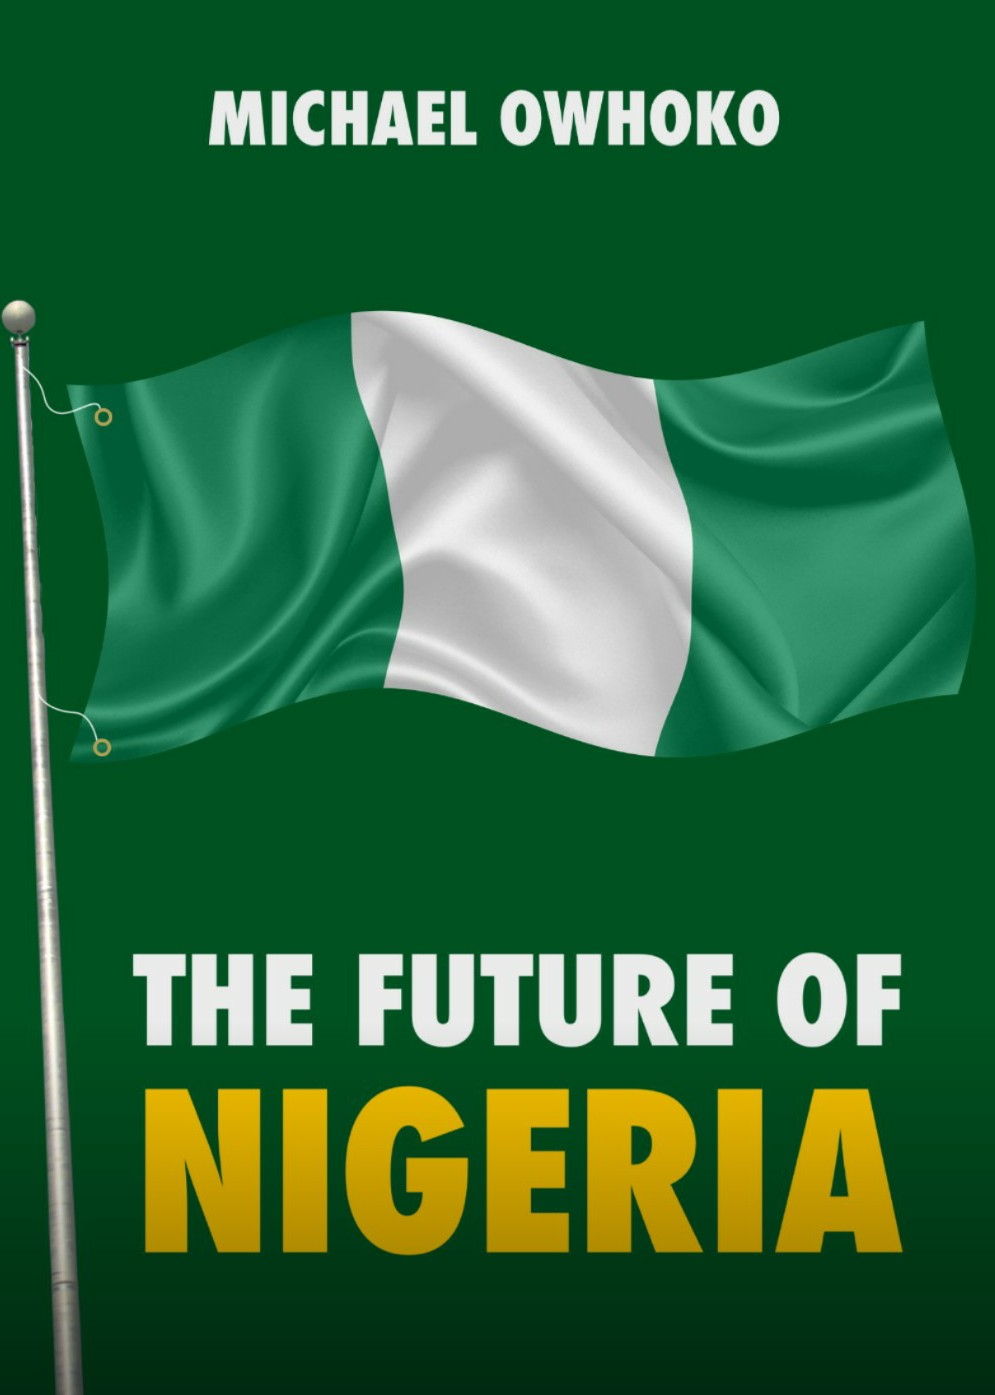 Blueprint for averting Nigeria's breakup revealed in new book